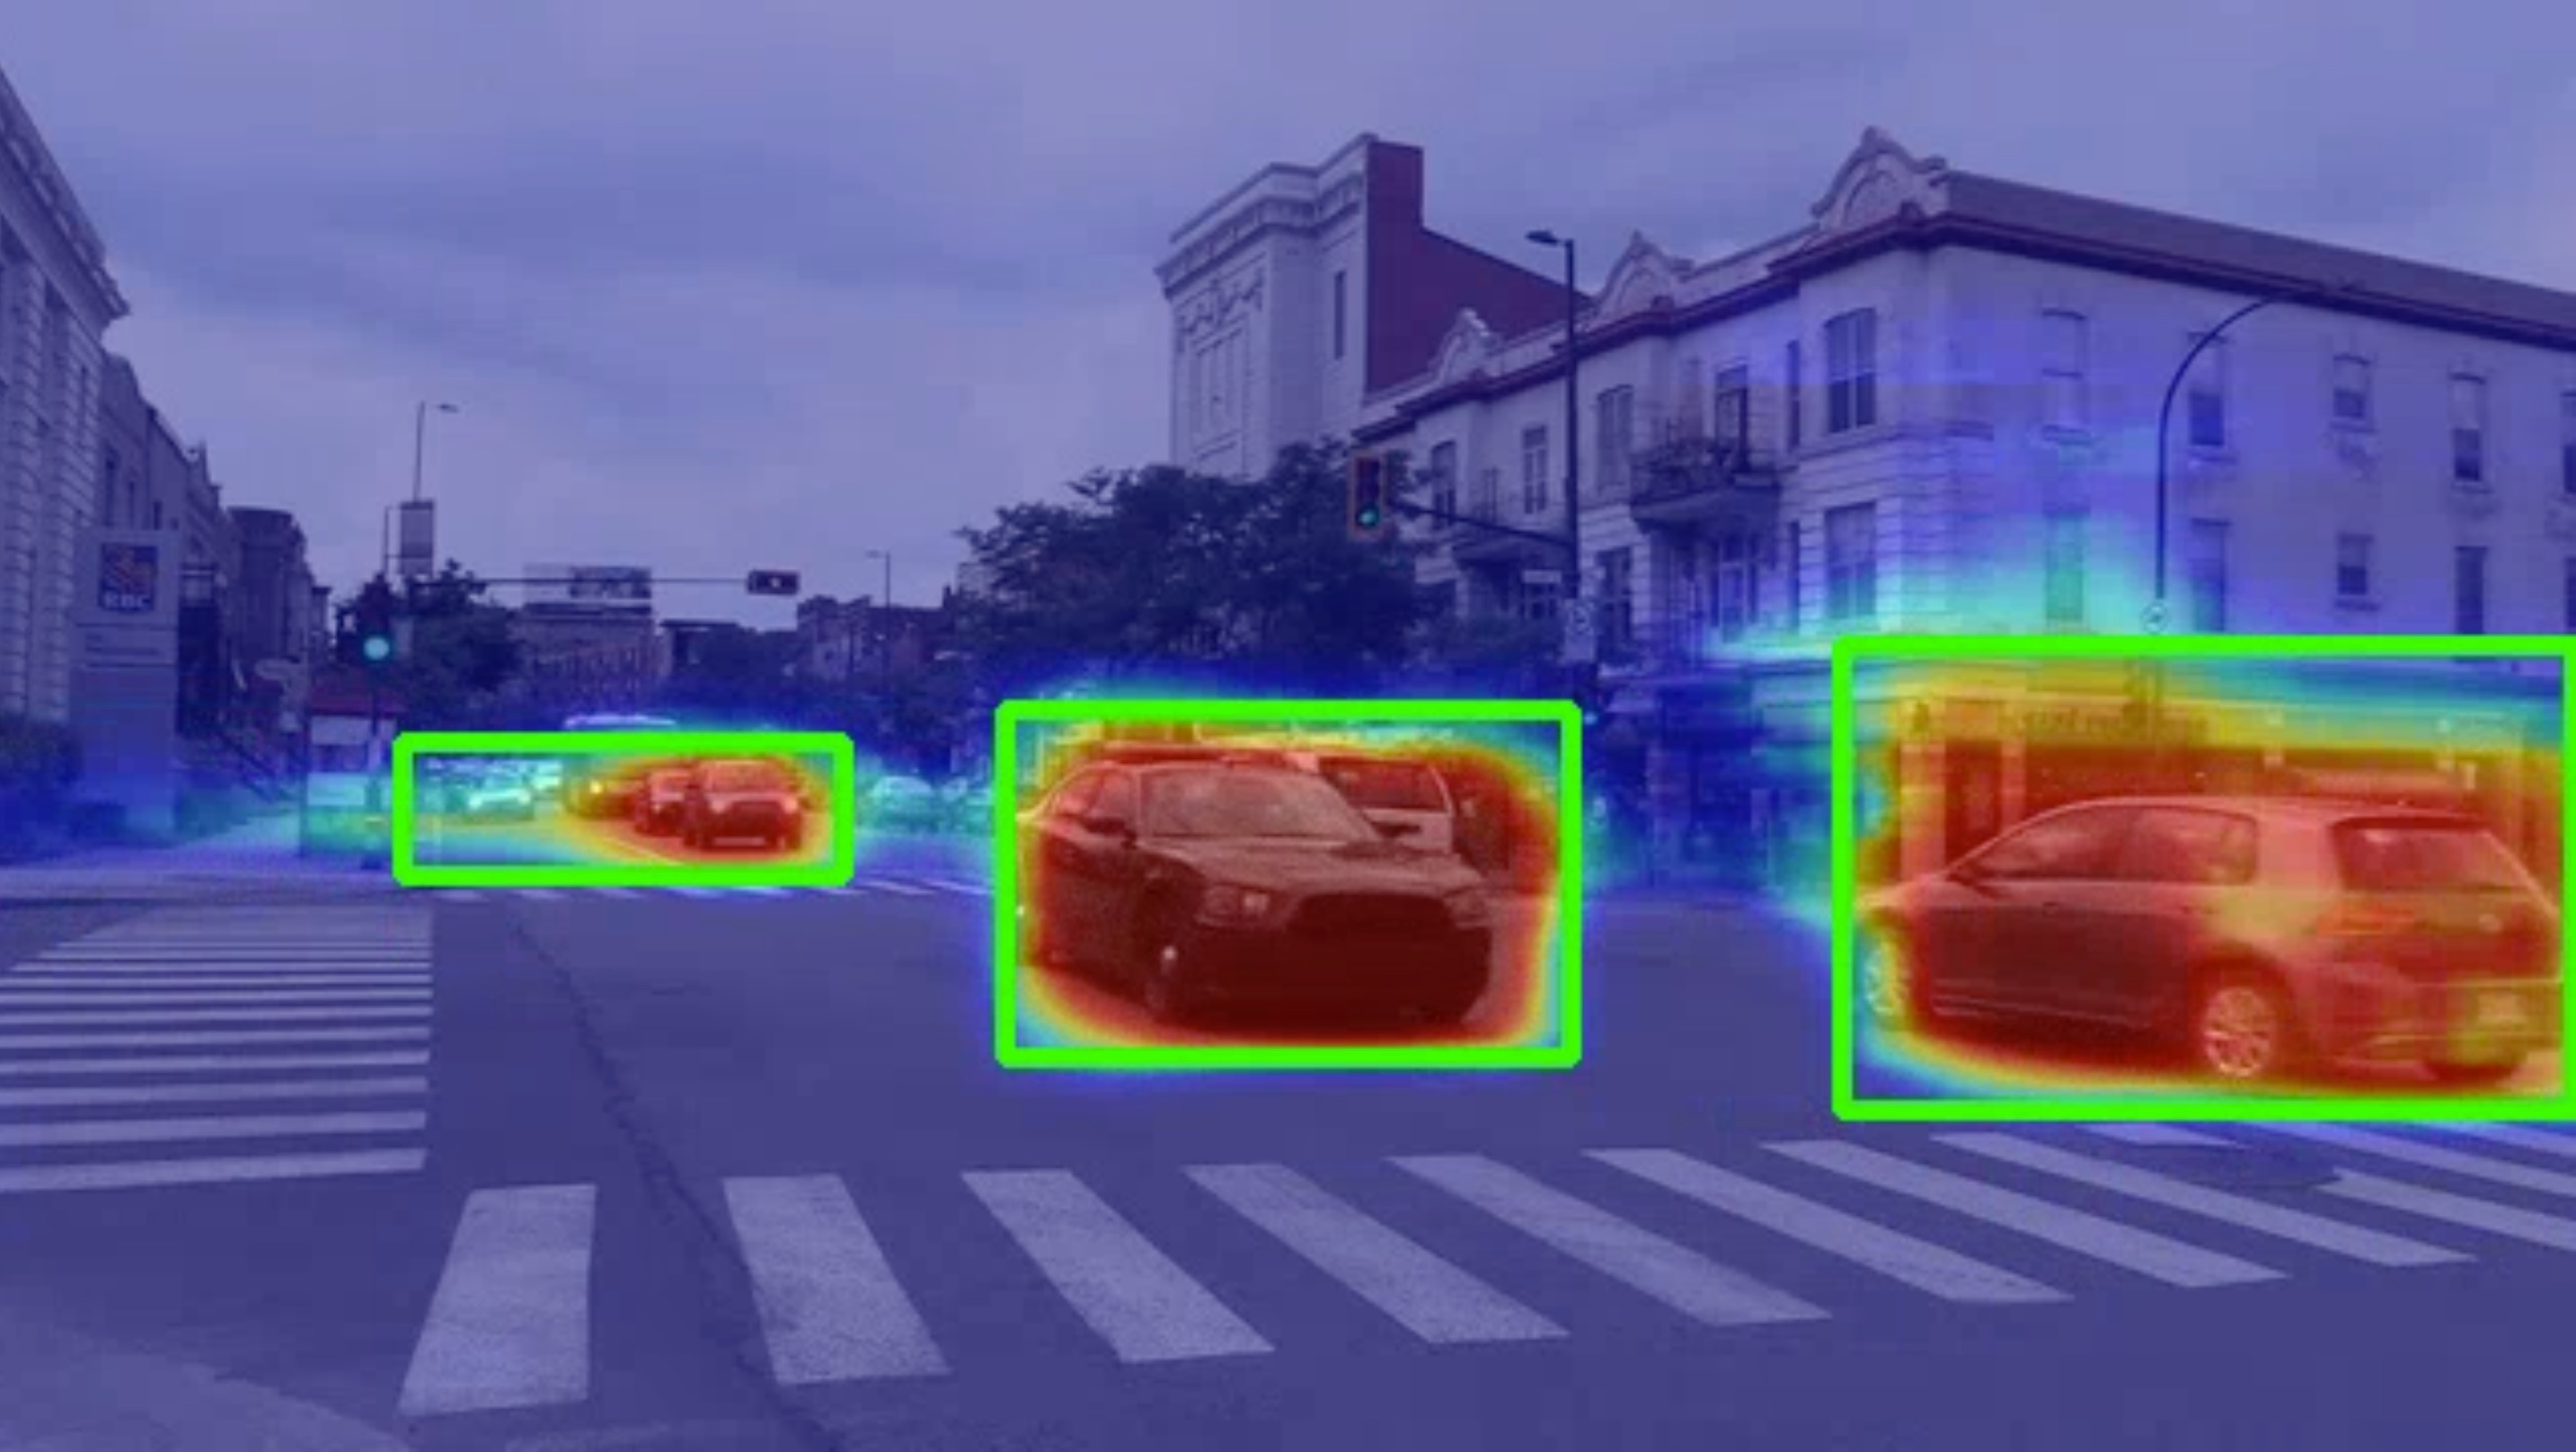 /building-real-time-vehicle-detection-system-0d1g3t0g feature image